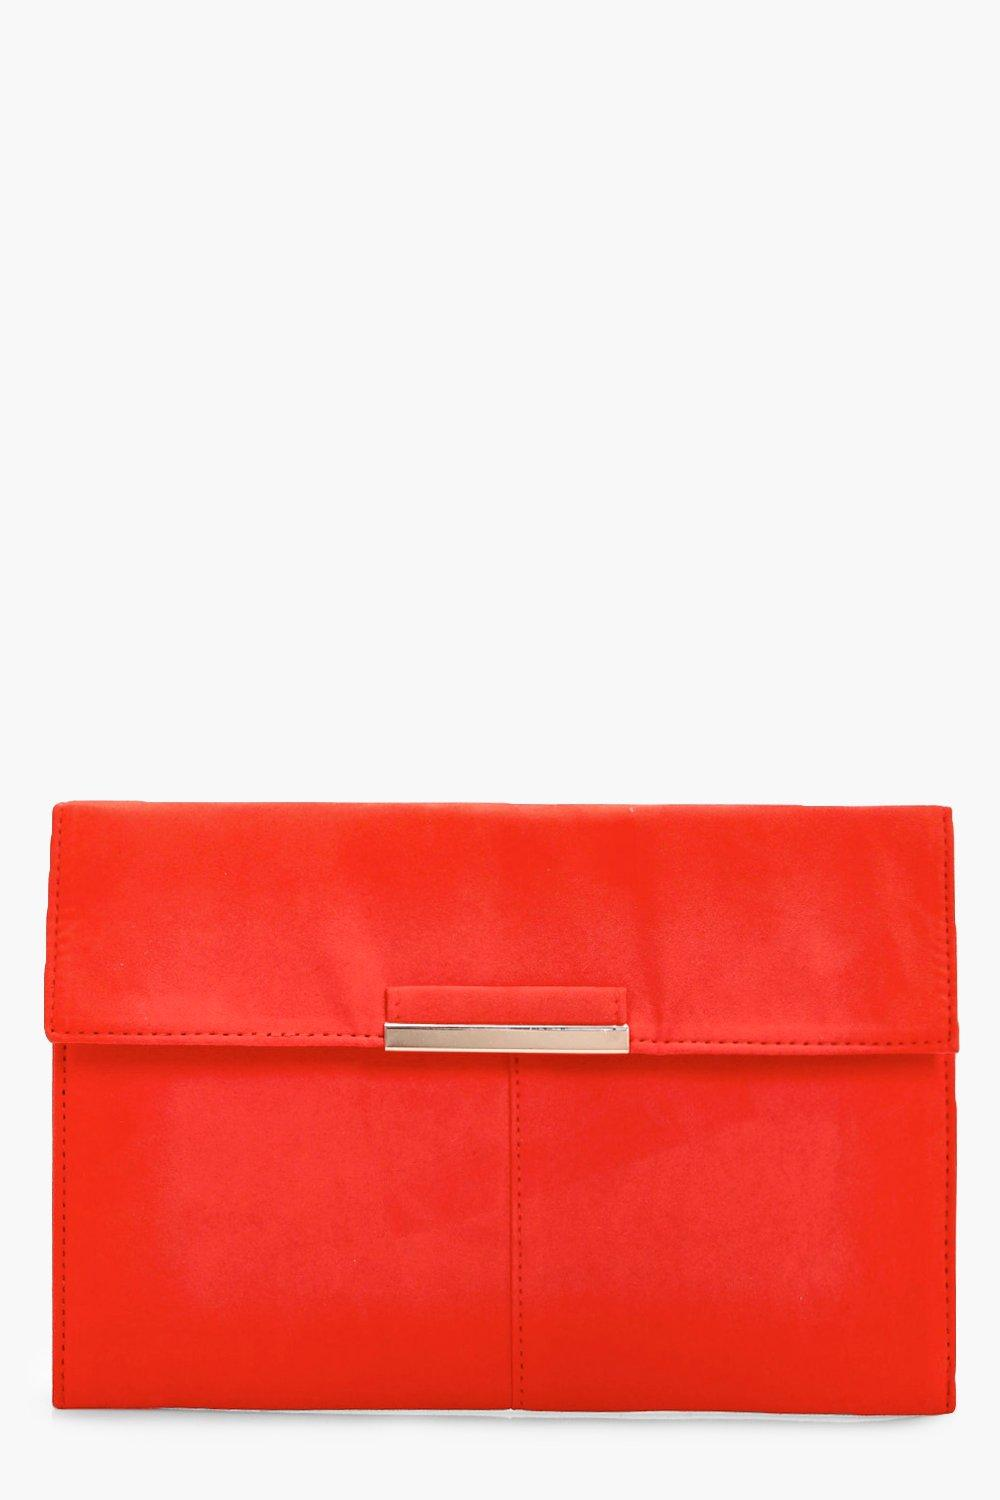 Suedette Coloured Clutch - coral - Yasmin Suedette